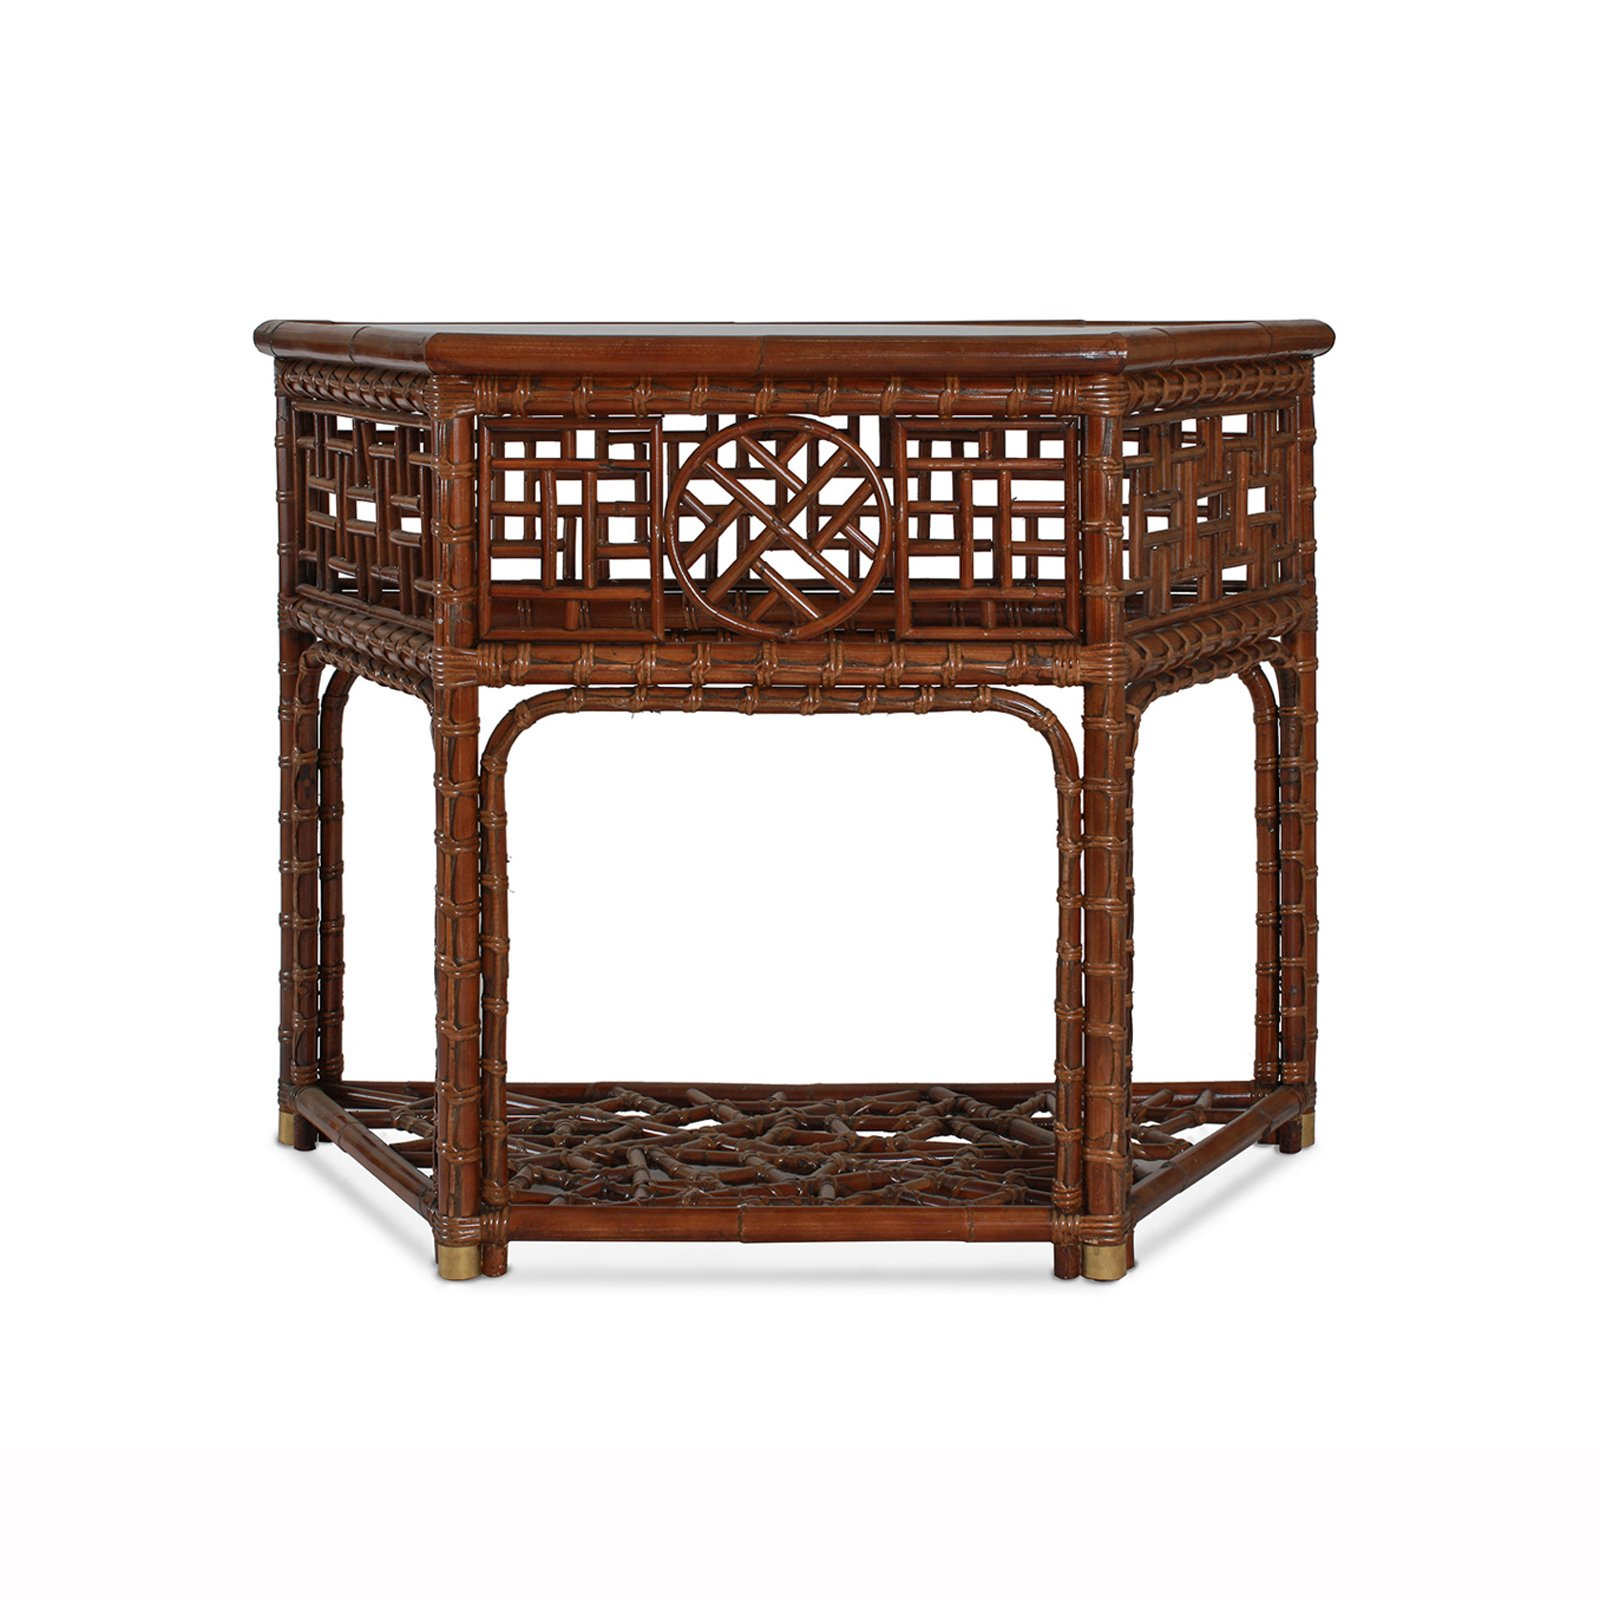 MANDALAY DEMI LUNE CONSOLE - STUART MEMBERY HOME COLLECTION